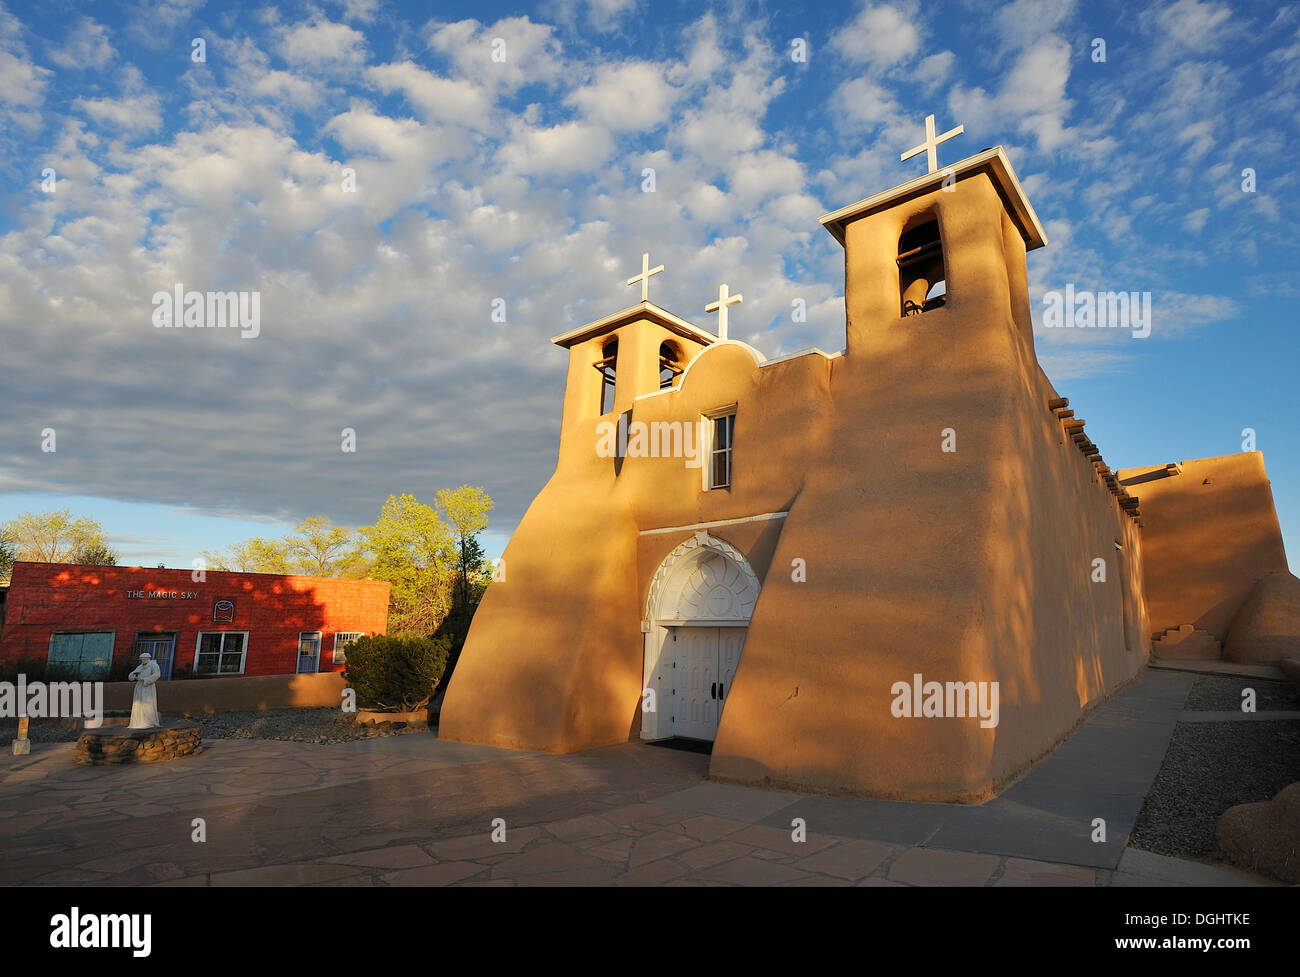 Adobe architecture, Church of St. Francis of Assisi, Ranchos de Taos, New Mexico, USA - Stock Image